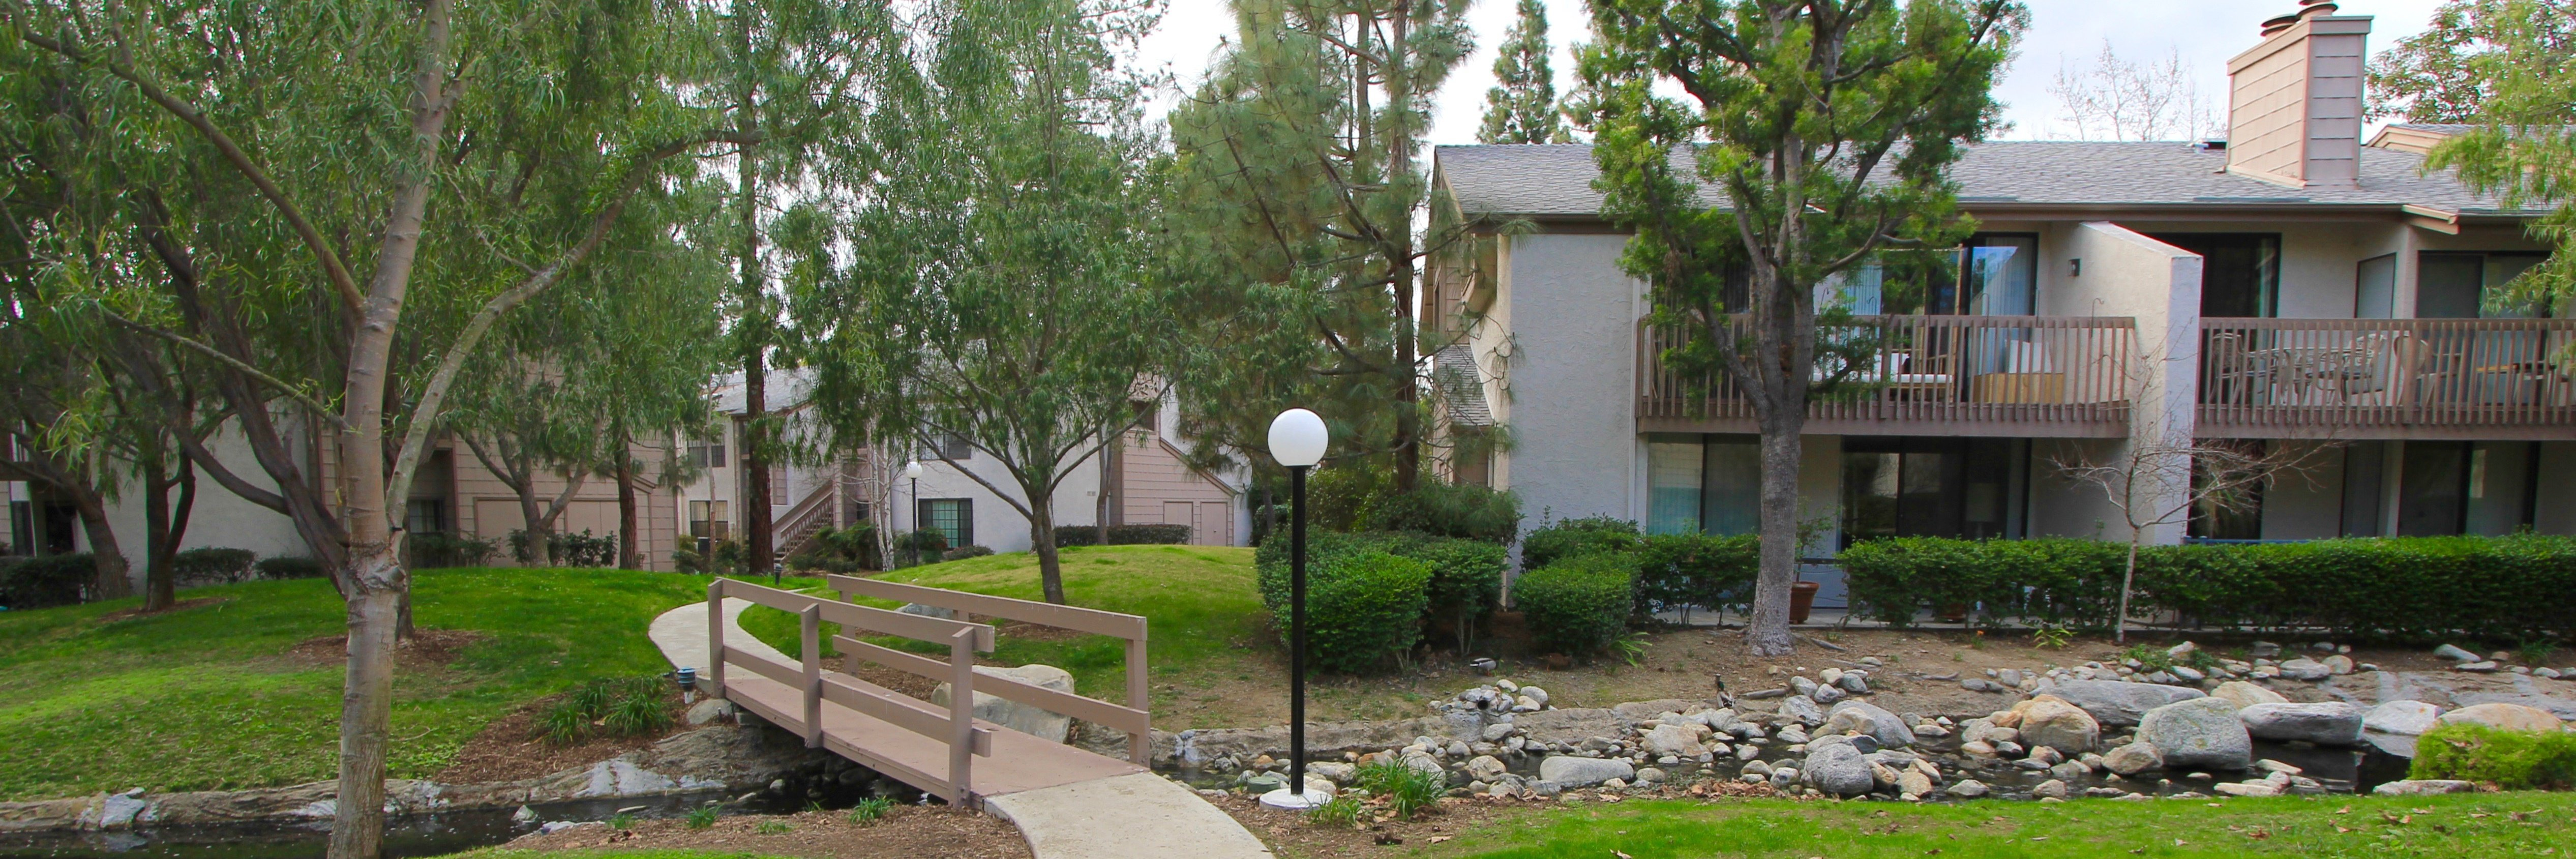 Quail Creek is a community located in the city of Laguna Hills CA